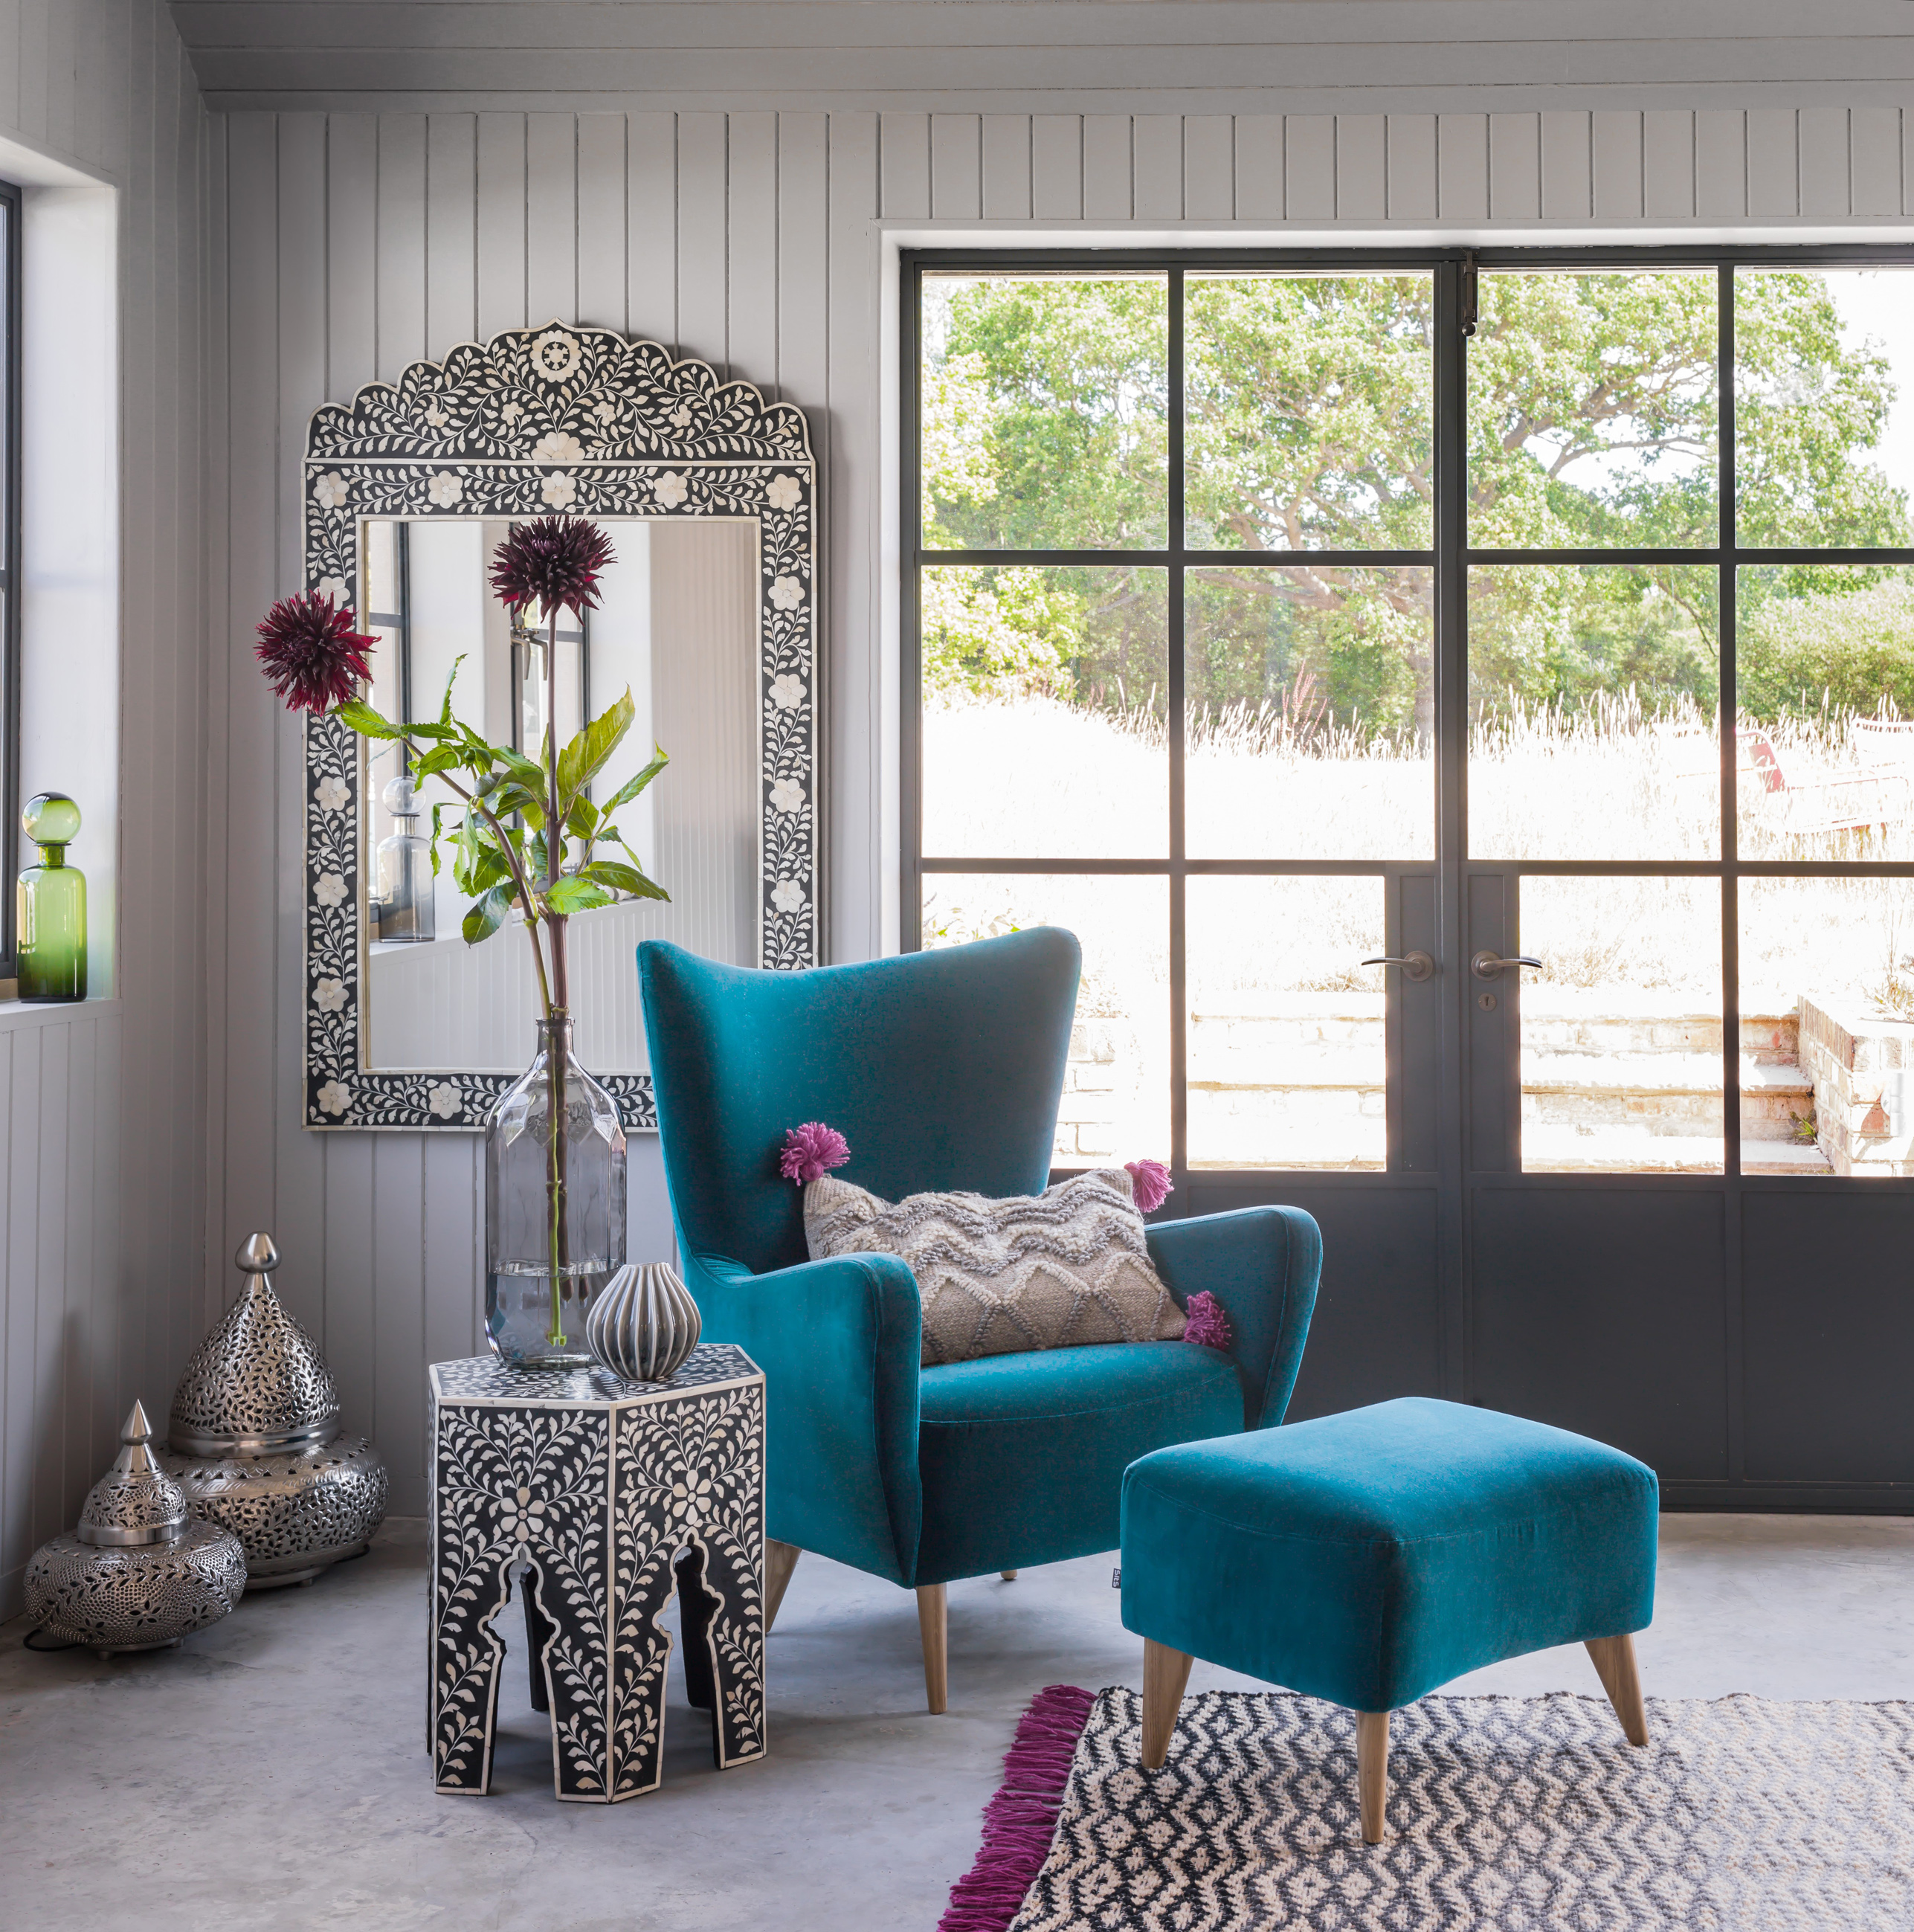 Elsa Chair In Luxe Turquoise Velvet, £1,095; Footstool, £398; Adriana Mirror, Grey, £495; Zagora Table, £279, Graham & Green (Graham & Green/PA)